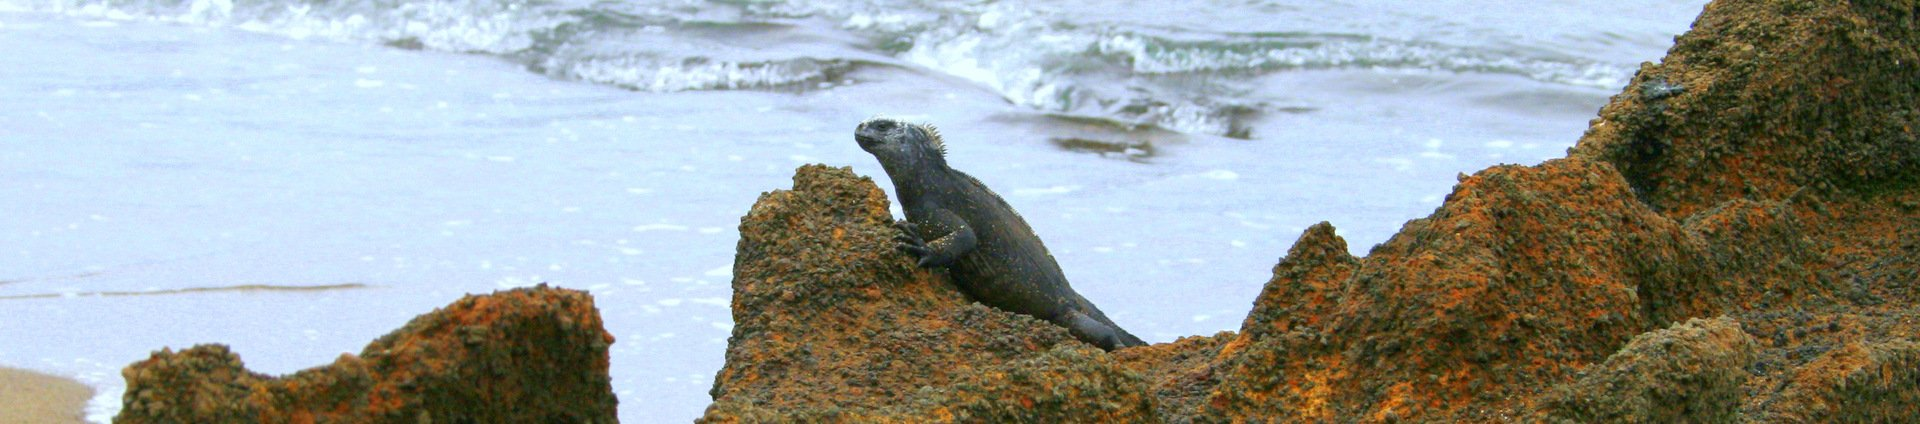 5 Day Eastern Galapagos